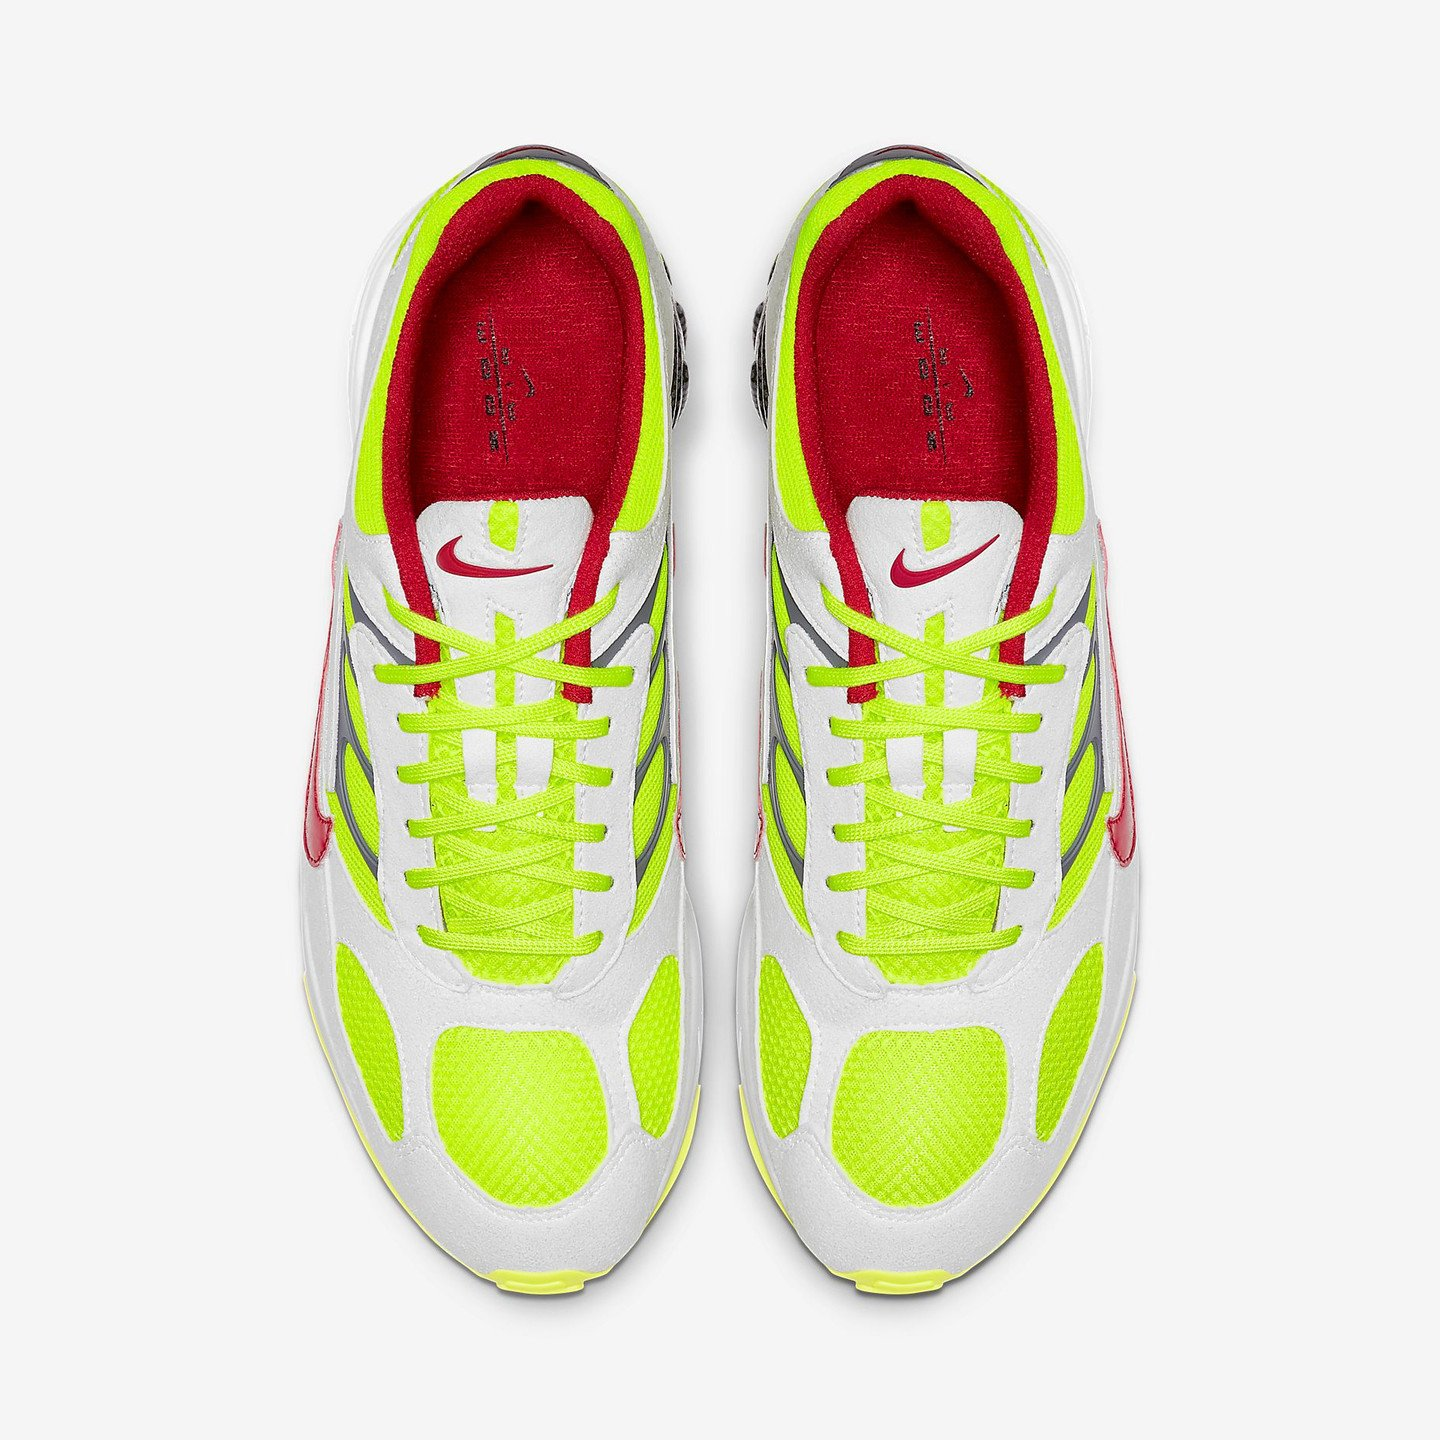 Nike Ghost Racer White /Atom Red / Neon Yellow / Dark Grey AT5410-100